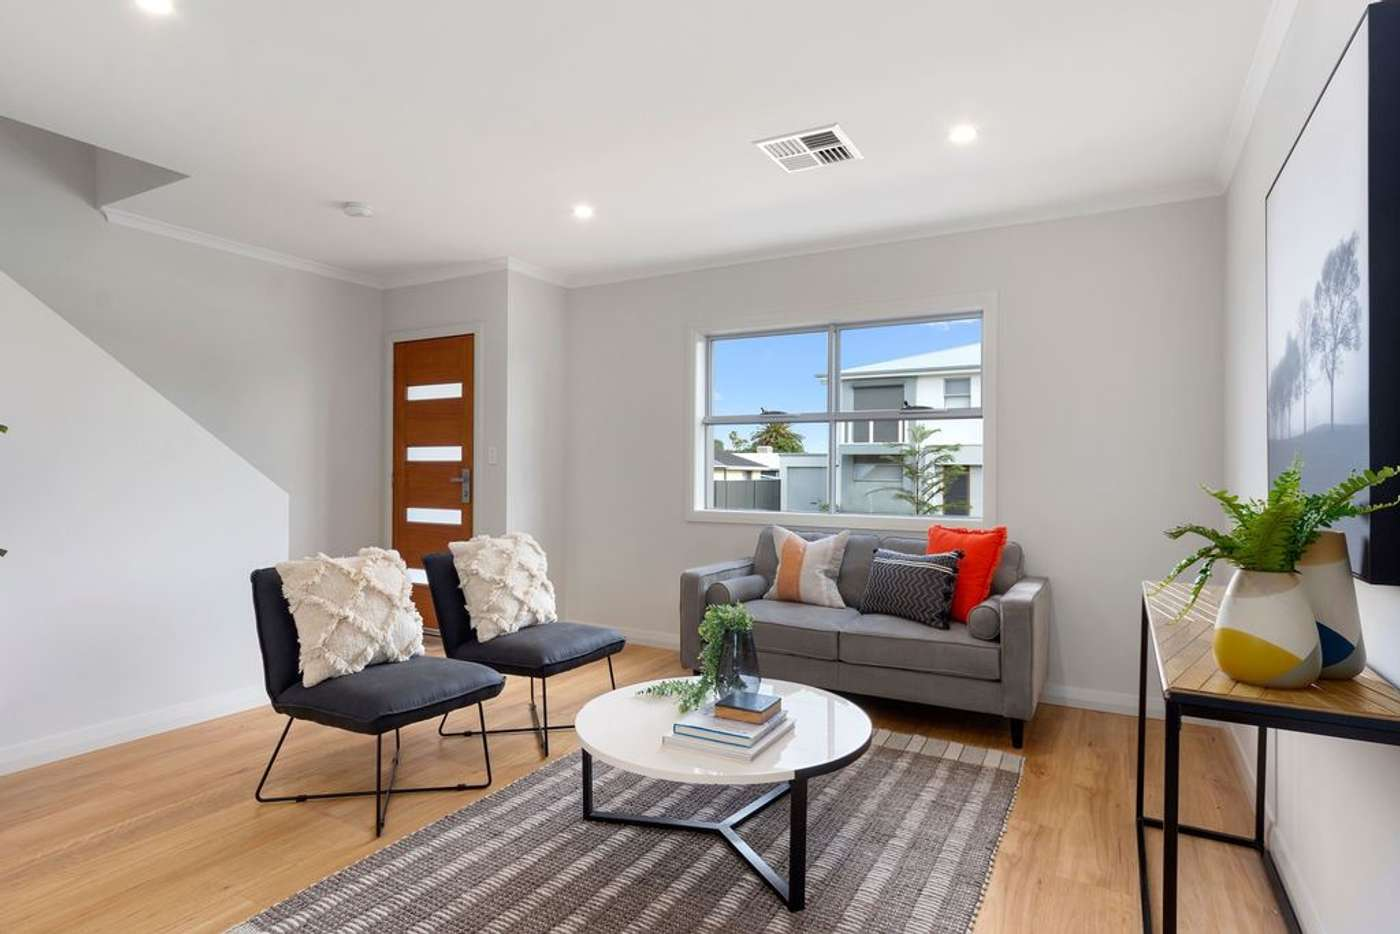 Fifth view of Homely townhouse listing, 1/24 - 26 Grazing Avenue, Morphett Vale SA 5162